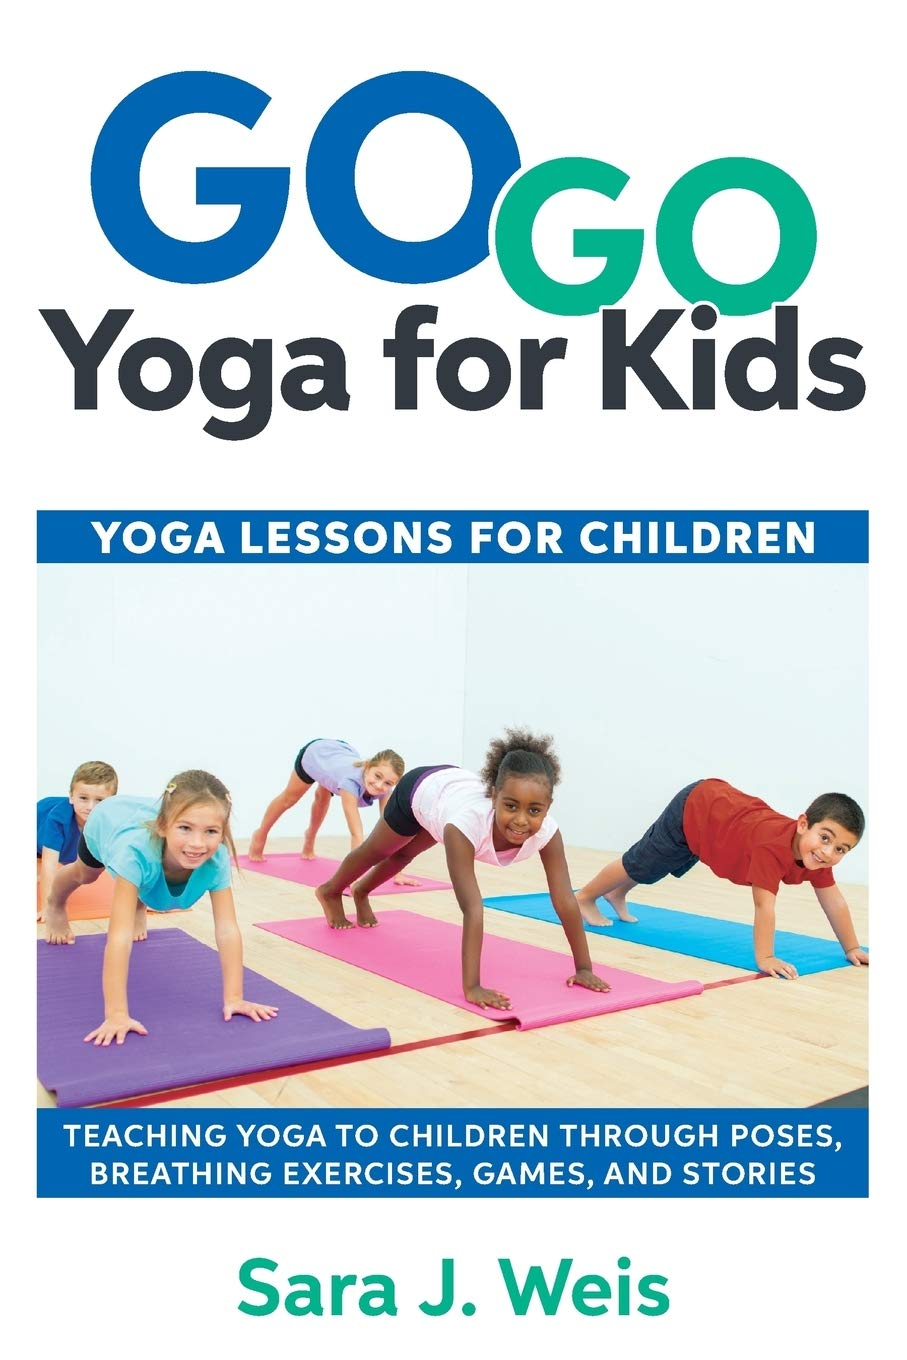 Go Go Yoga for Kids: Yoga Lessons for Children: Teaching Yoga to Children Through Poses, Breathing Exercises, Games, and S...